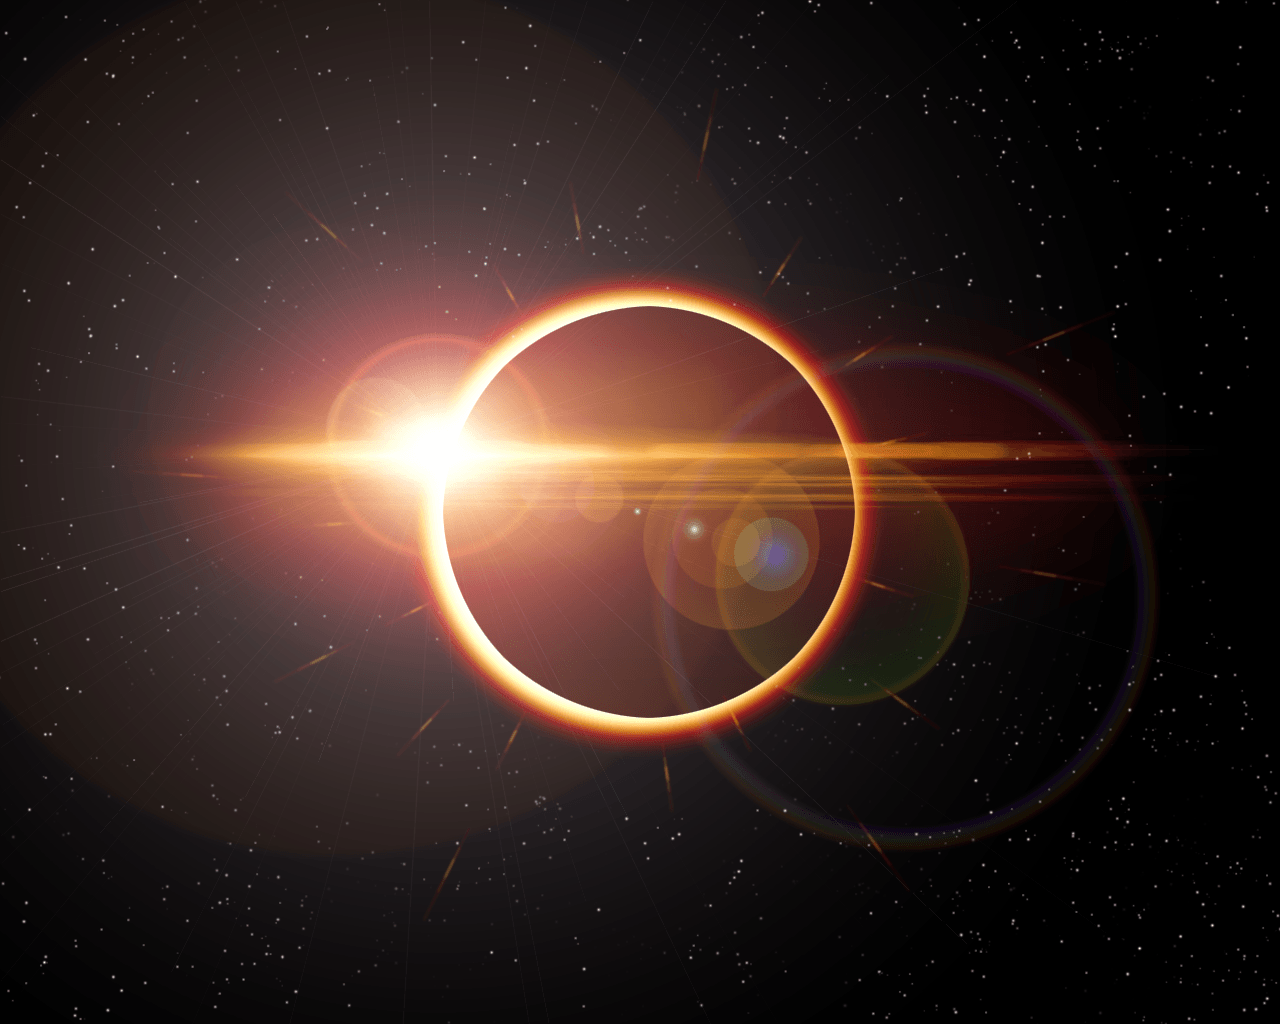 Solar Eclipse top of Earth, Sky Wallpaper, hd phone wallpapers